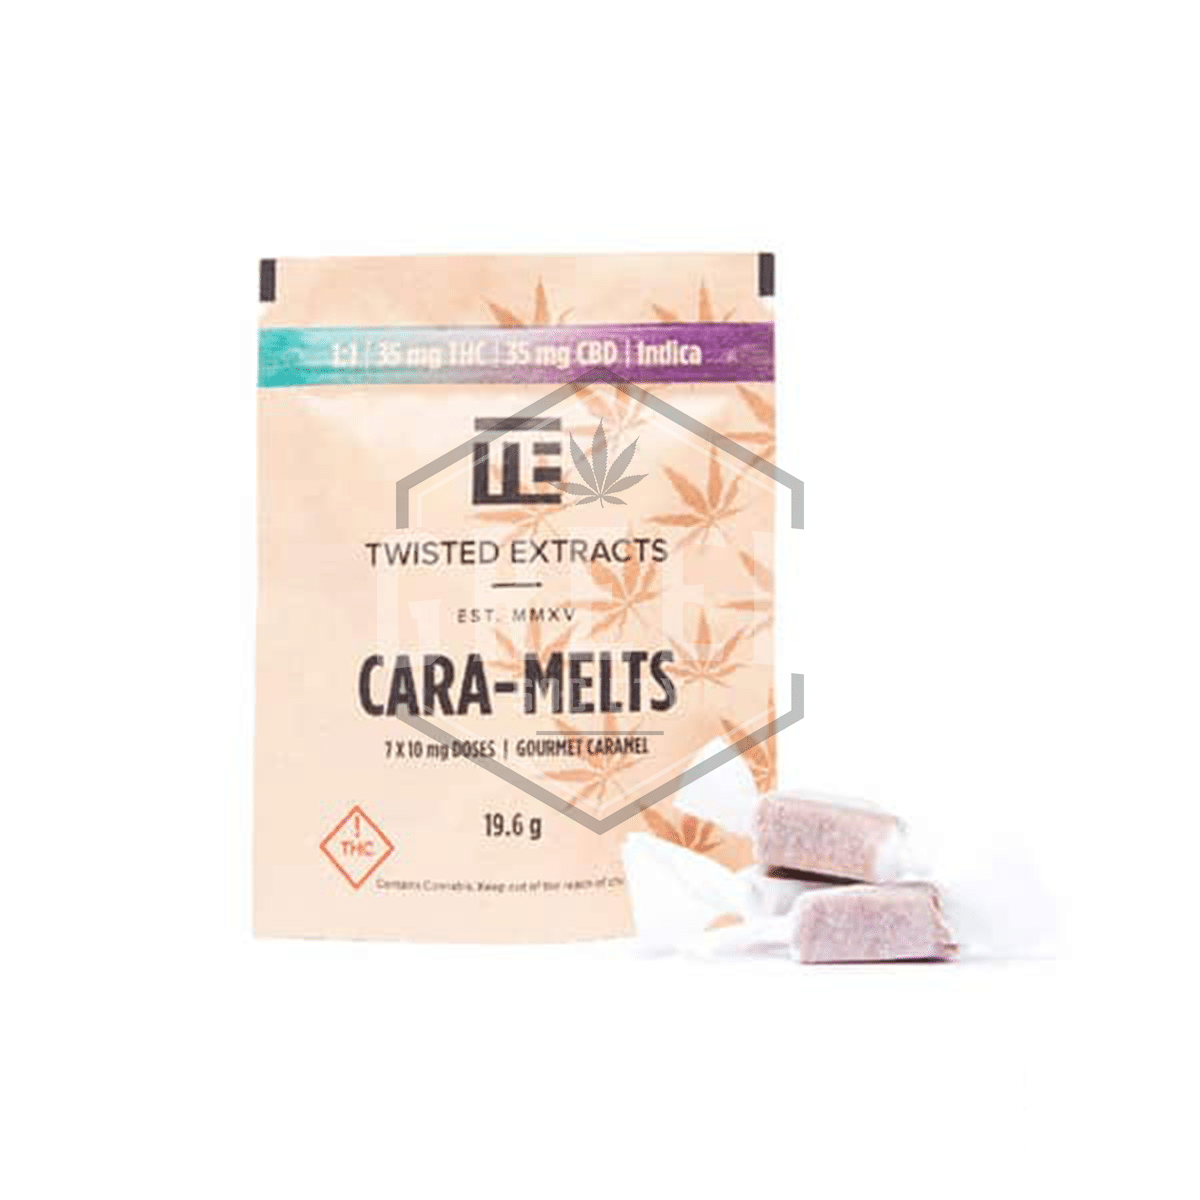 Indica 1:1 Cara-Melts by Twisted Extracts by Green Society - Image © 2018 Green Society. All Rights Reserved.